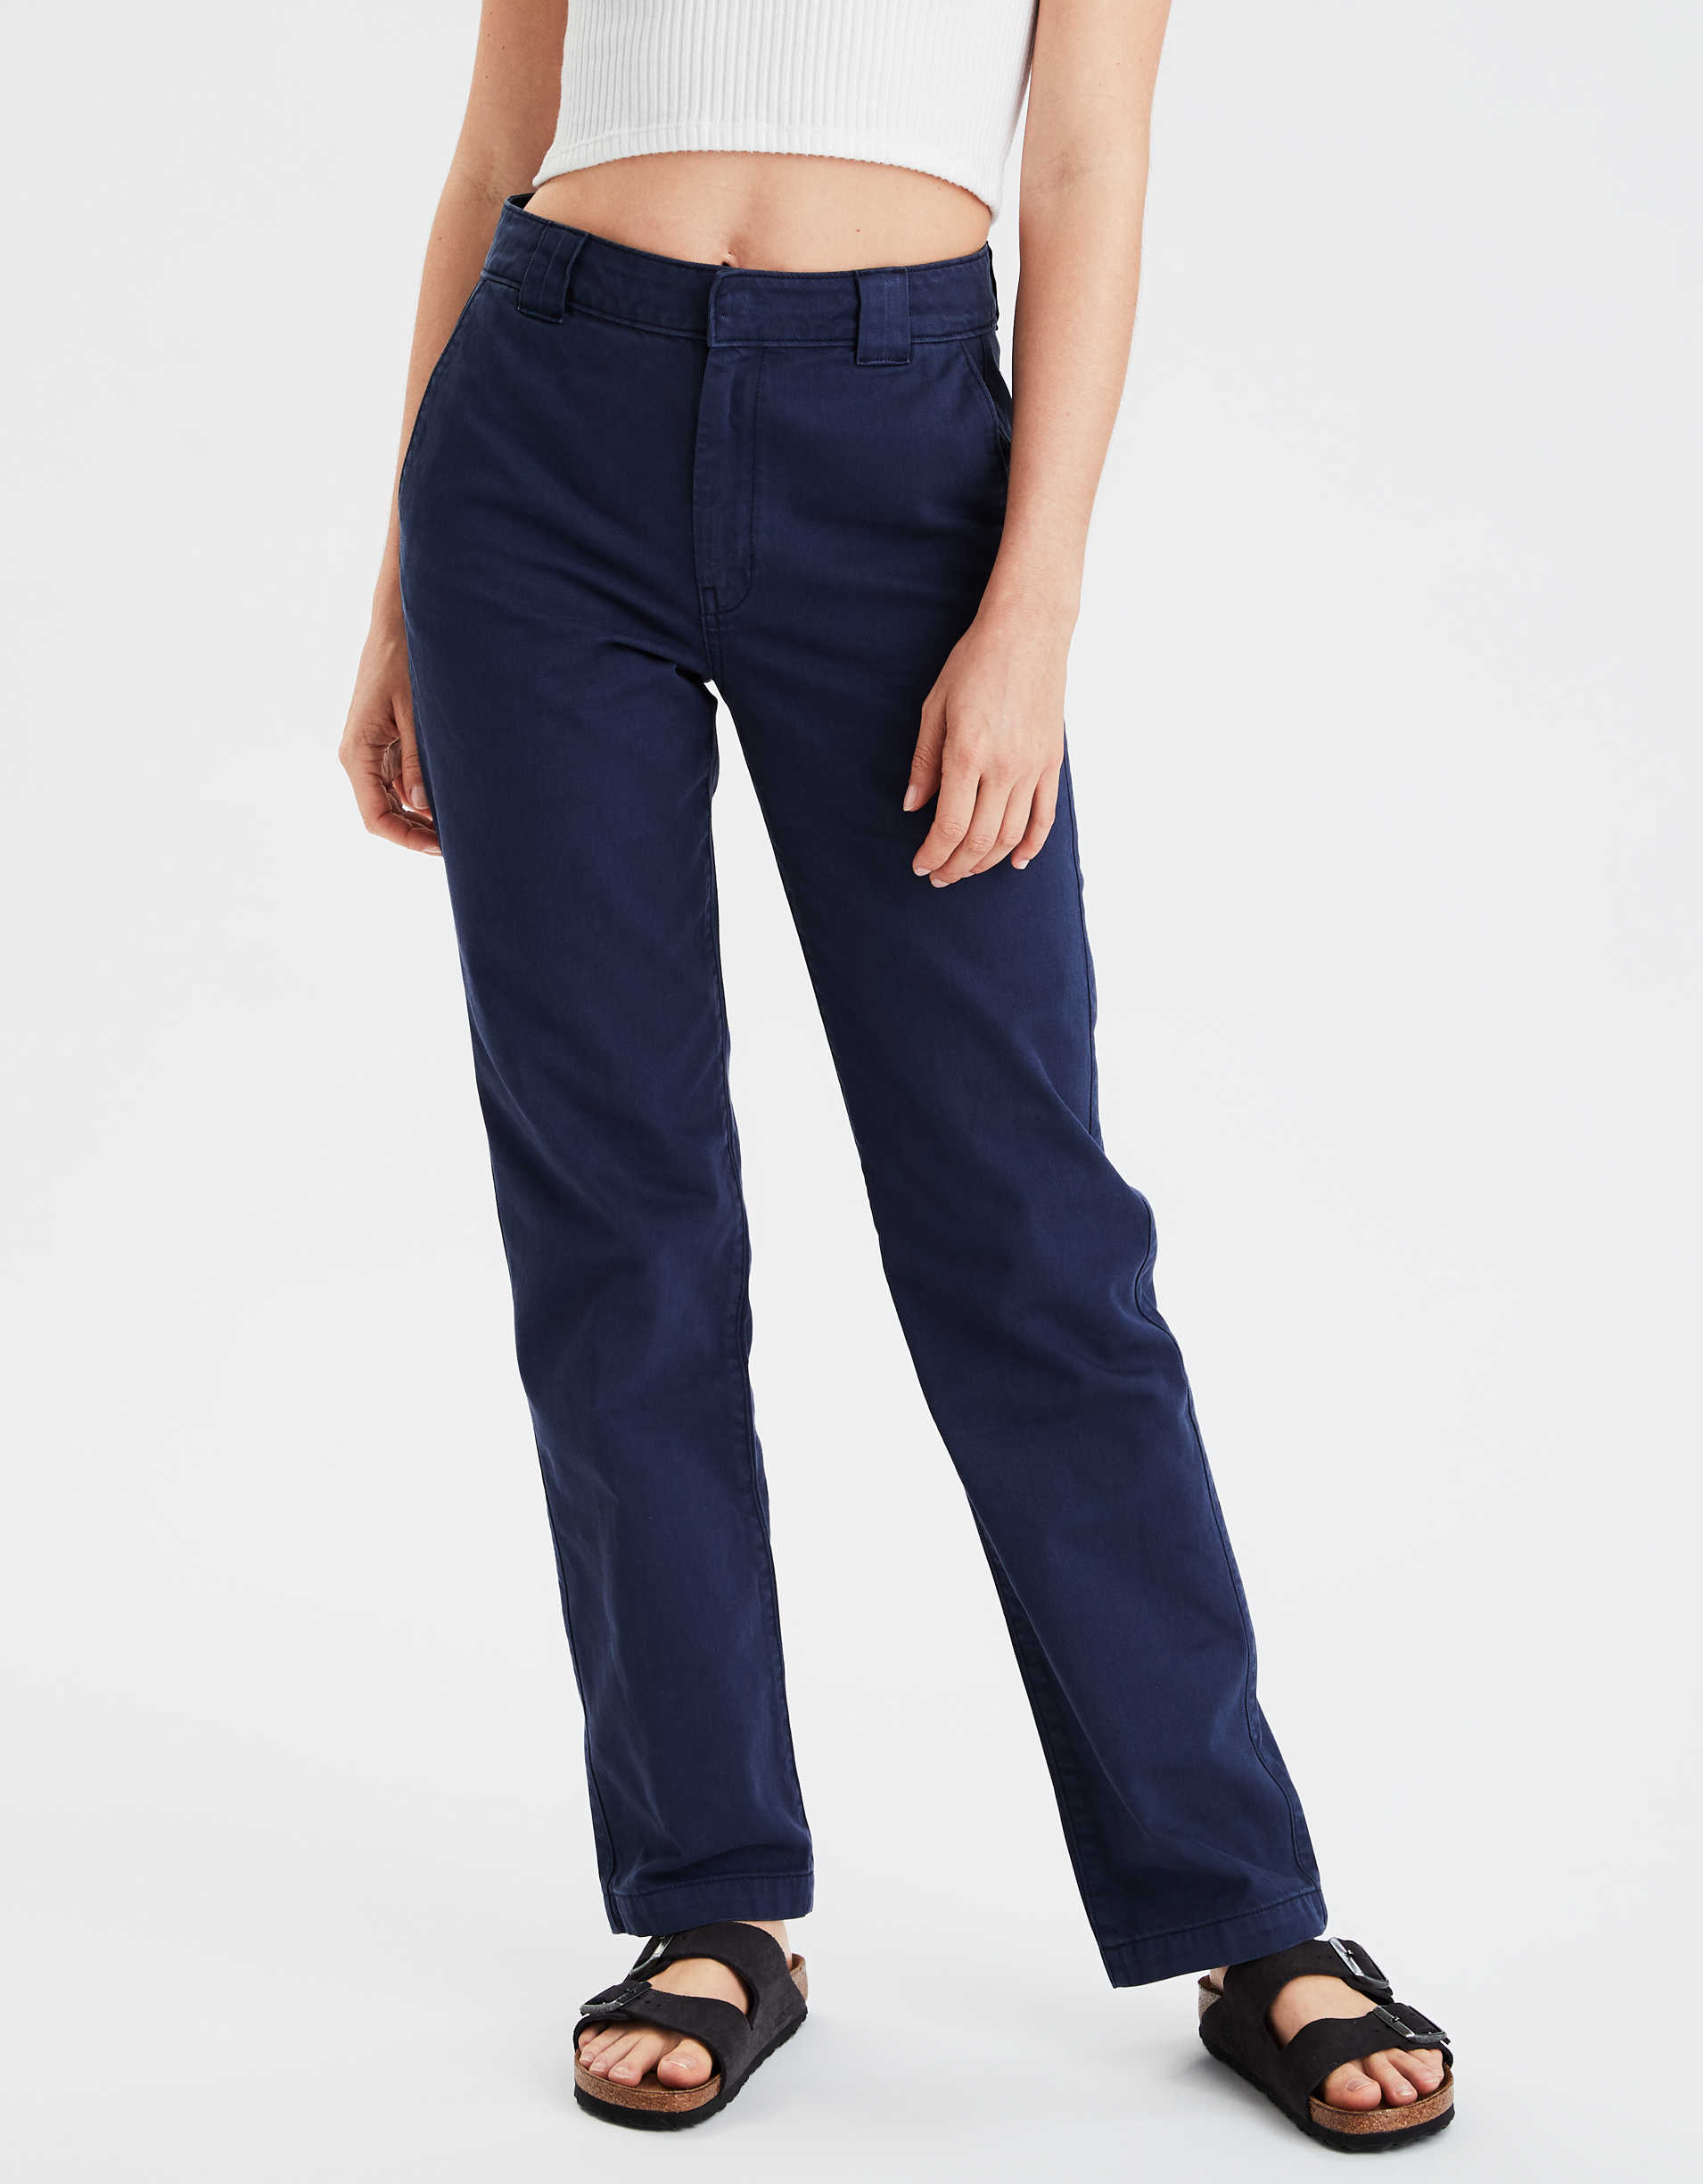 AE High-Waisted Workwear Pant